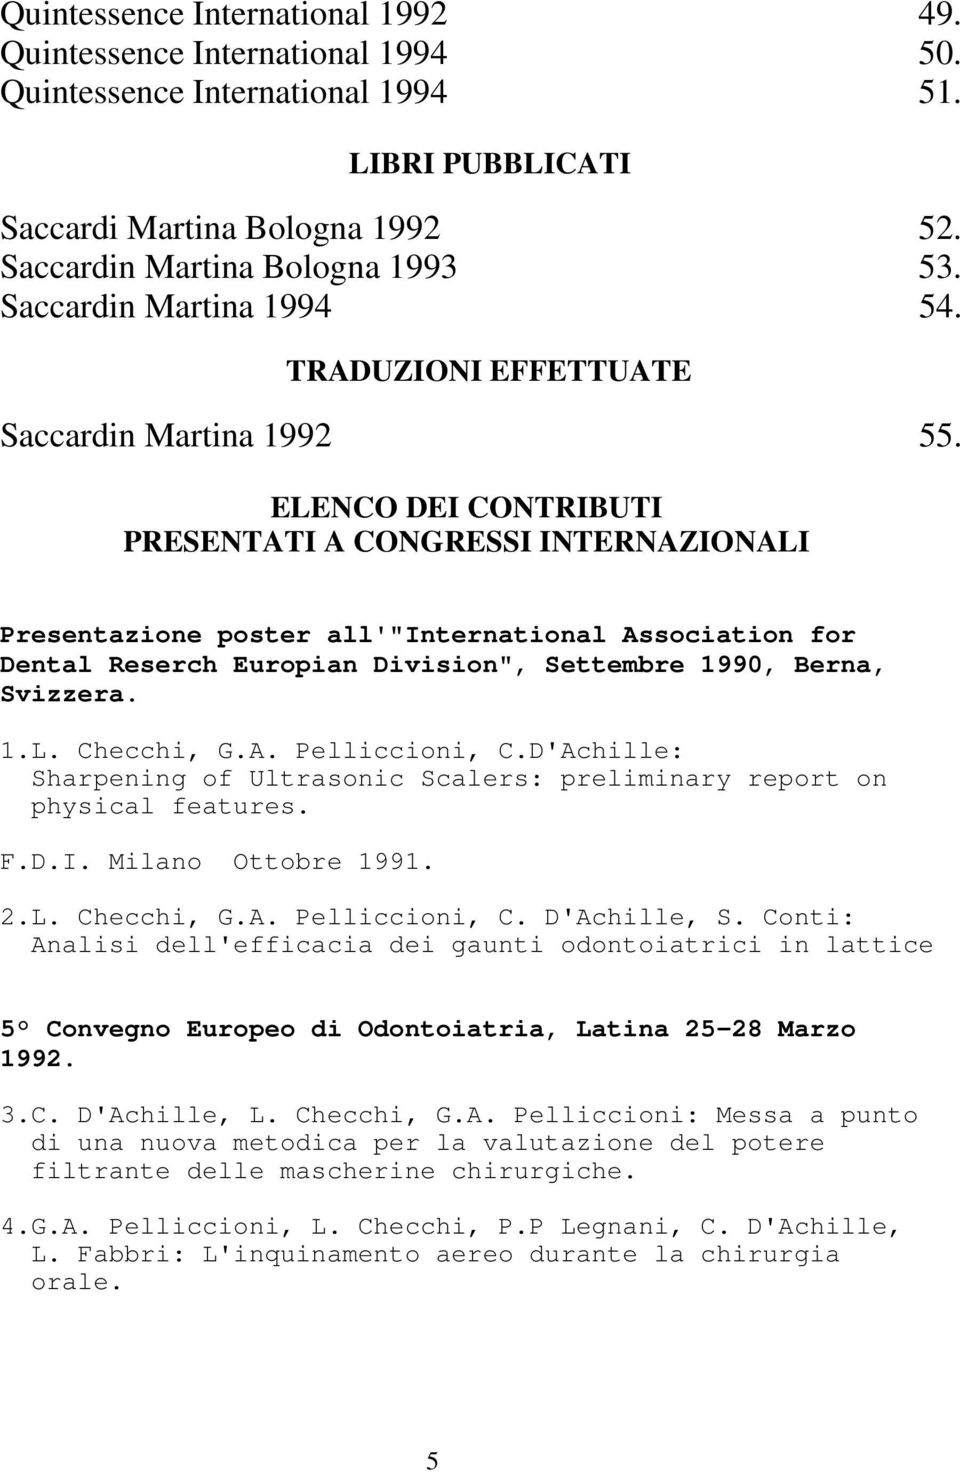 "ELENCO DEI CONTRIBUTI PRESENTATI A CONGRESSI INTERNAZIONALI Presentazione poster all'""international Association for Dental Reserch Europian Division"", Settembre 1990, Berna, Svizzera. 1.L. Checchi, G."